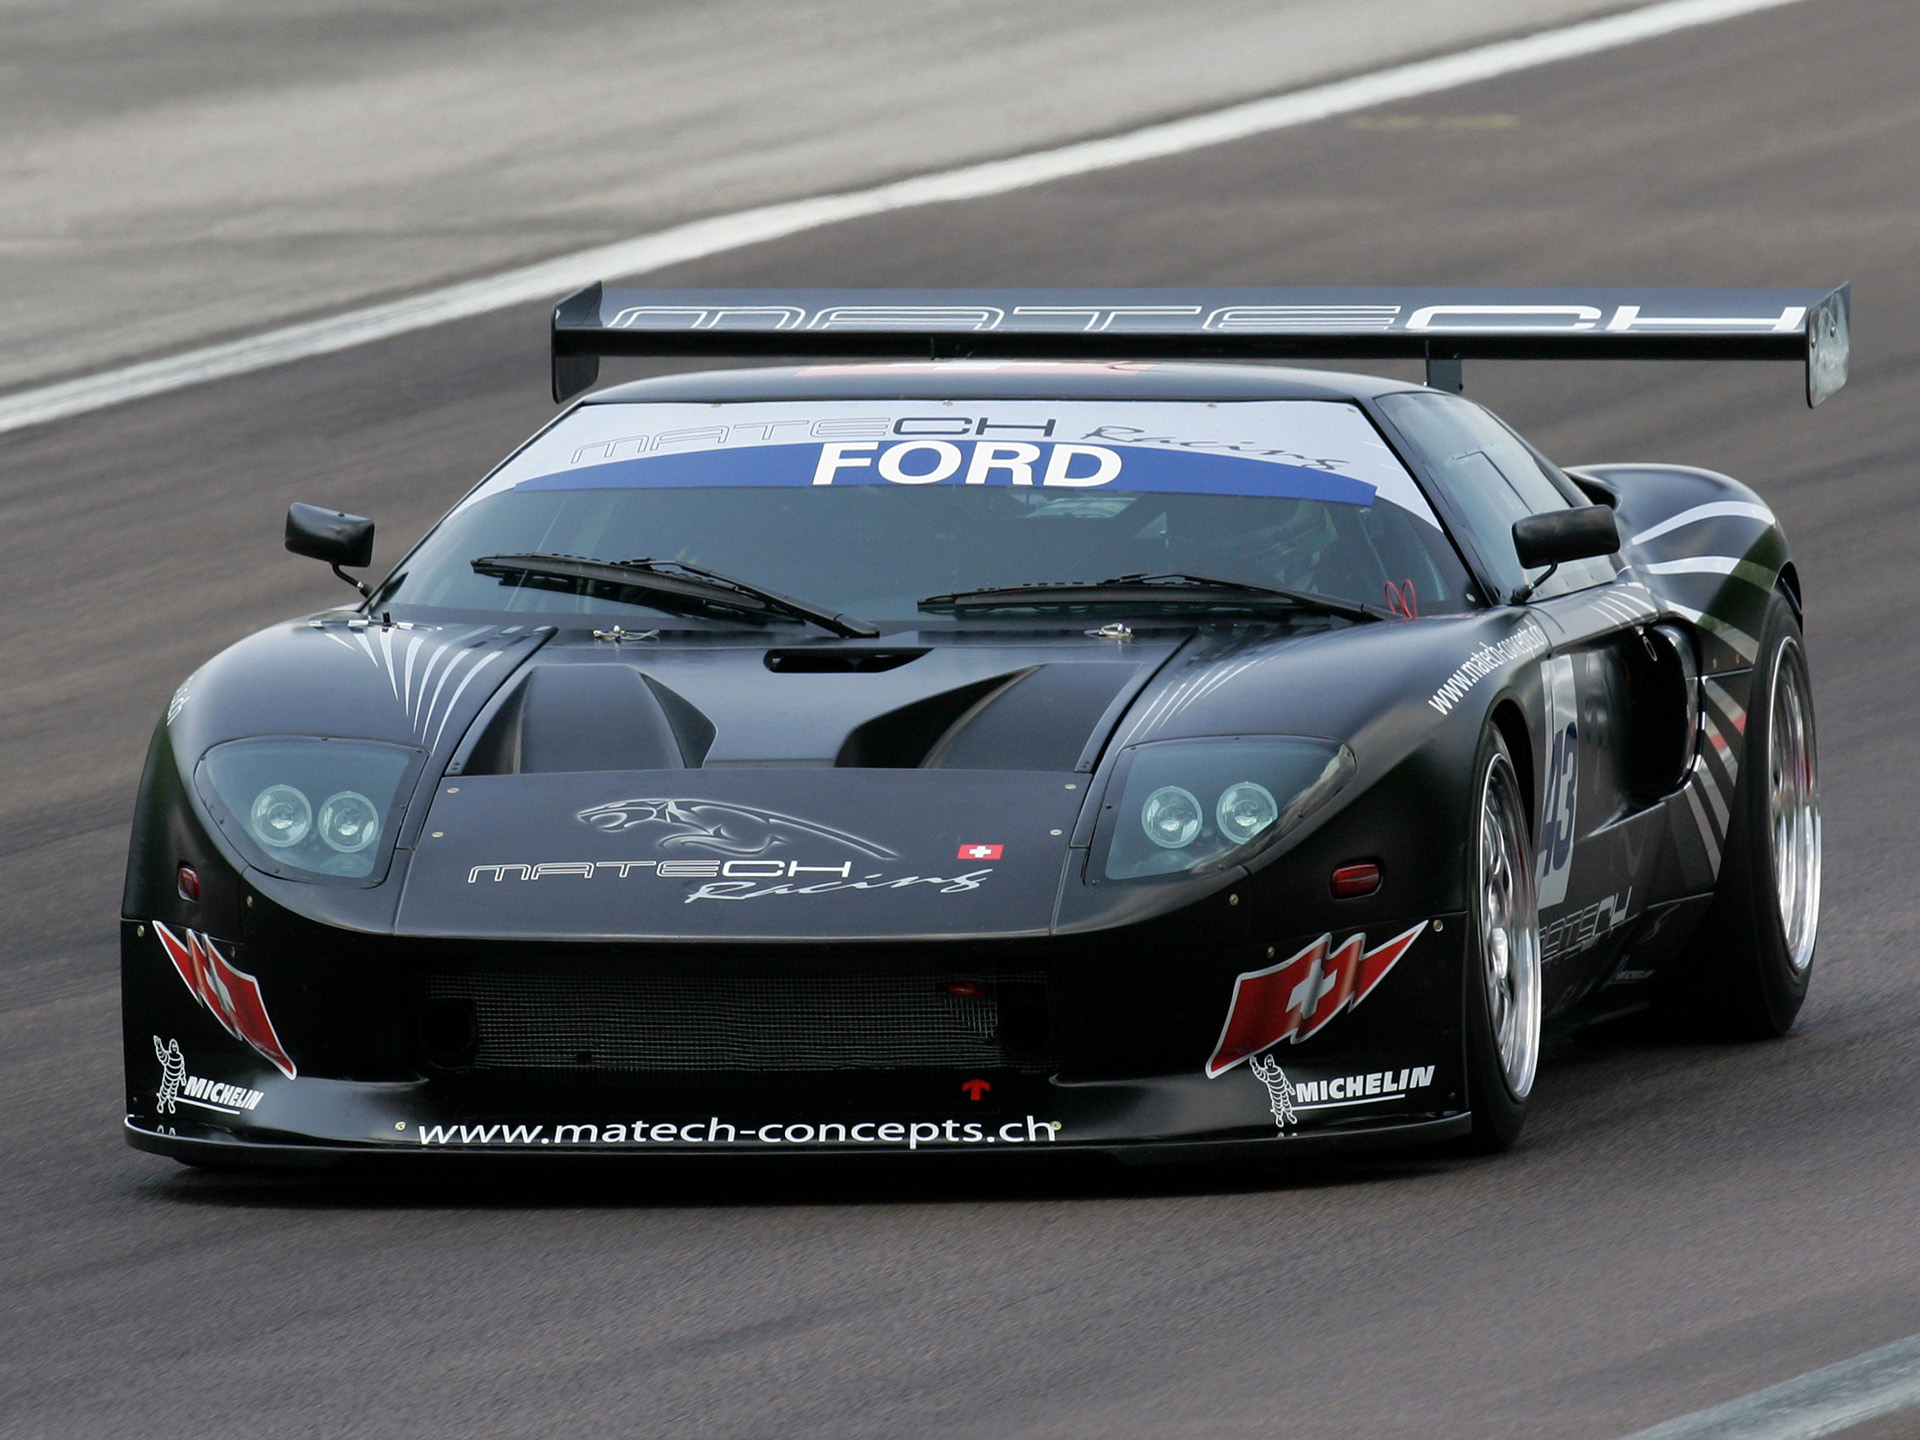 2007 Matech Racing Ford GT supercar supercars race racing fordgt